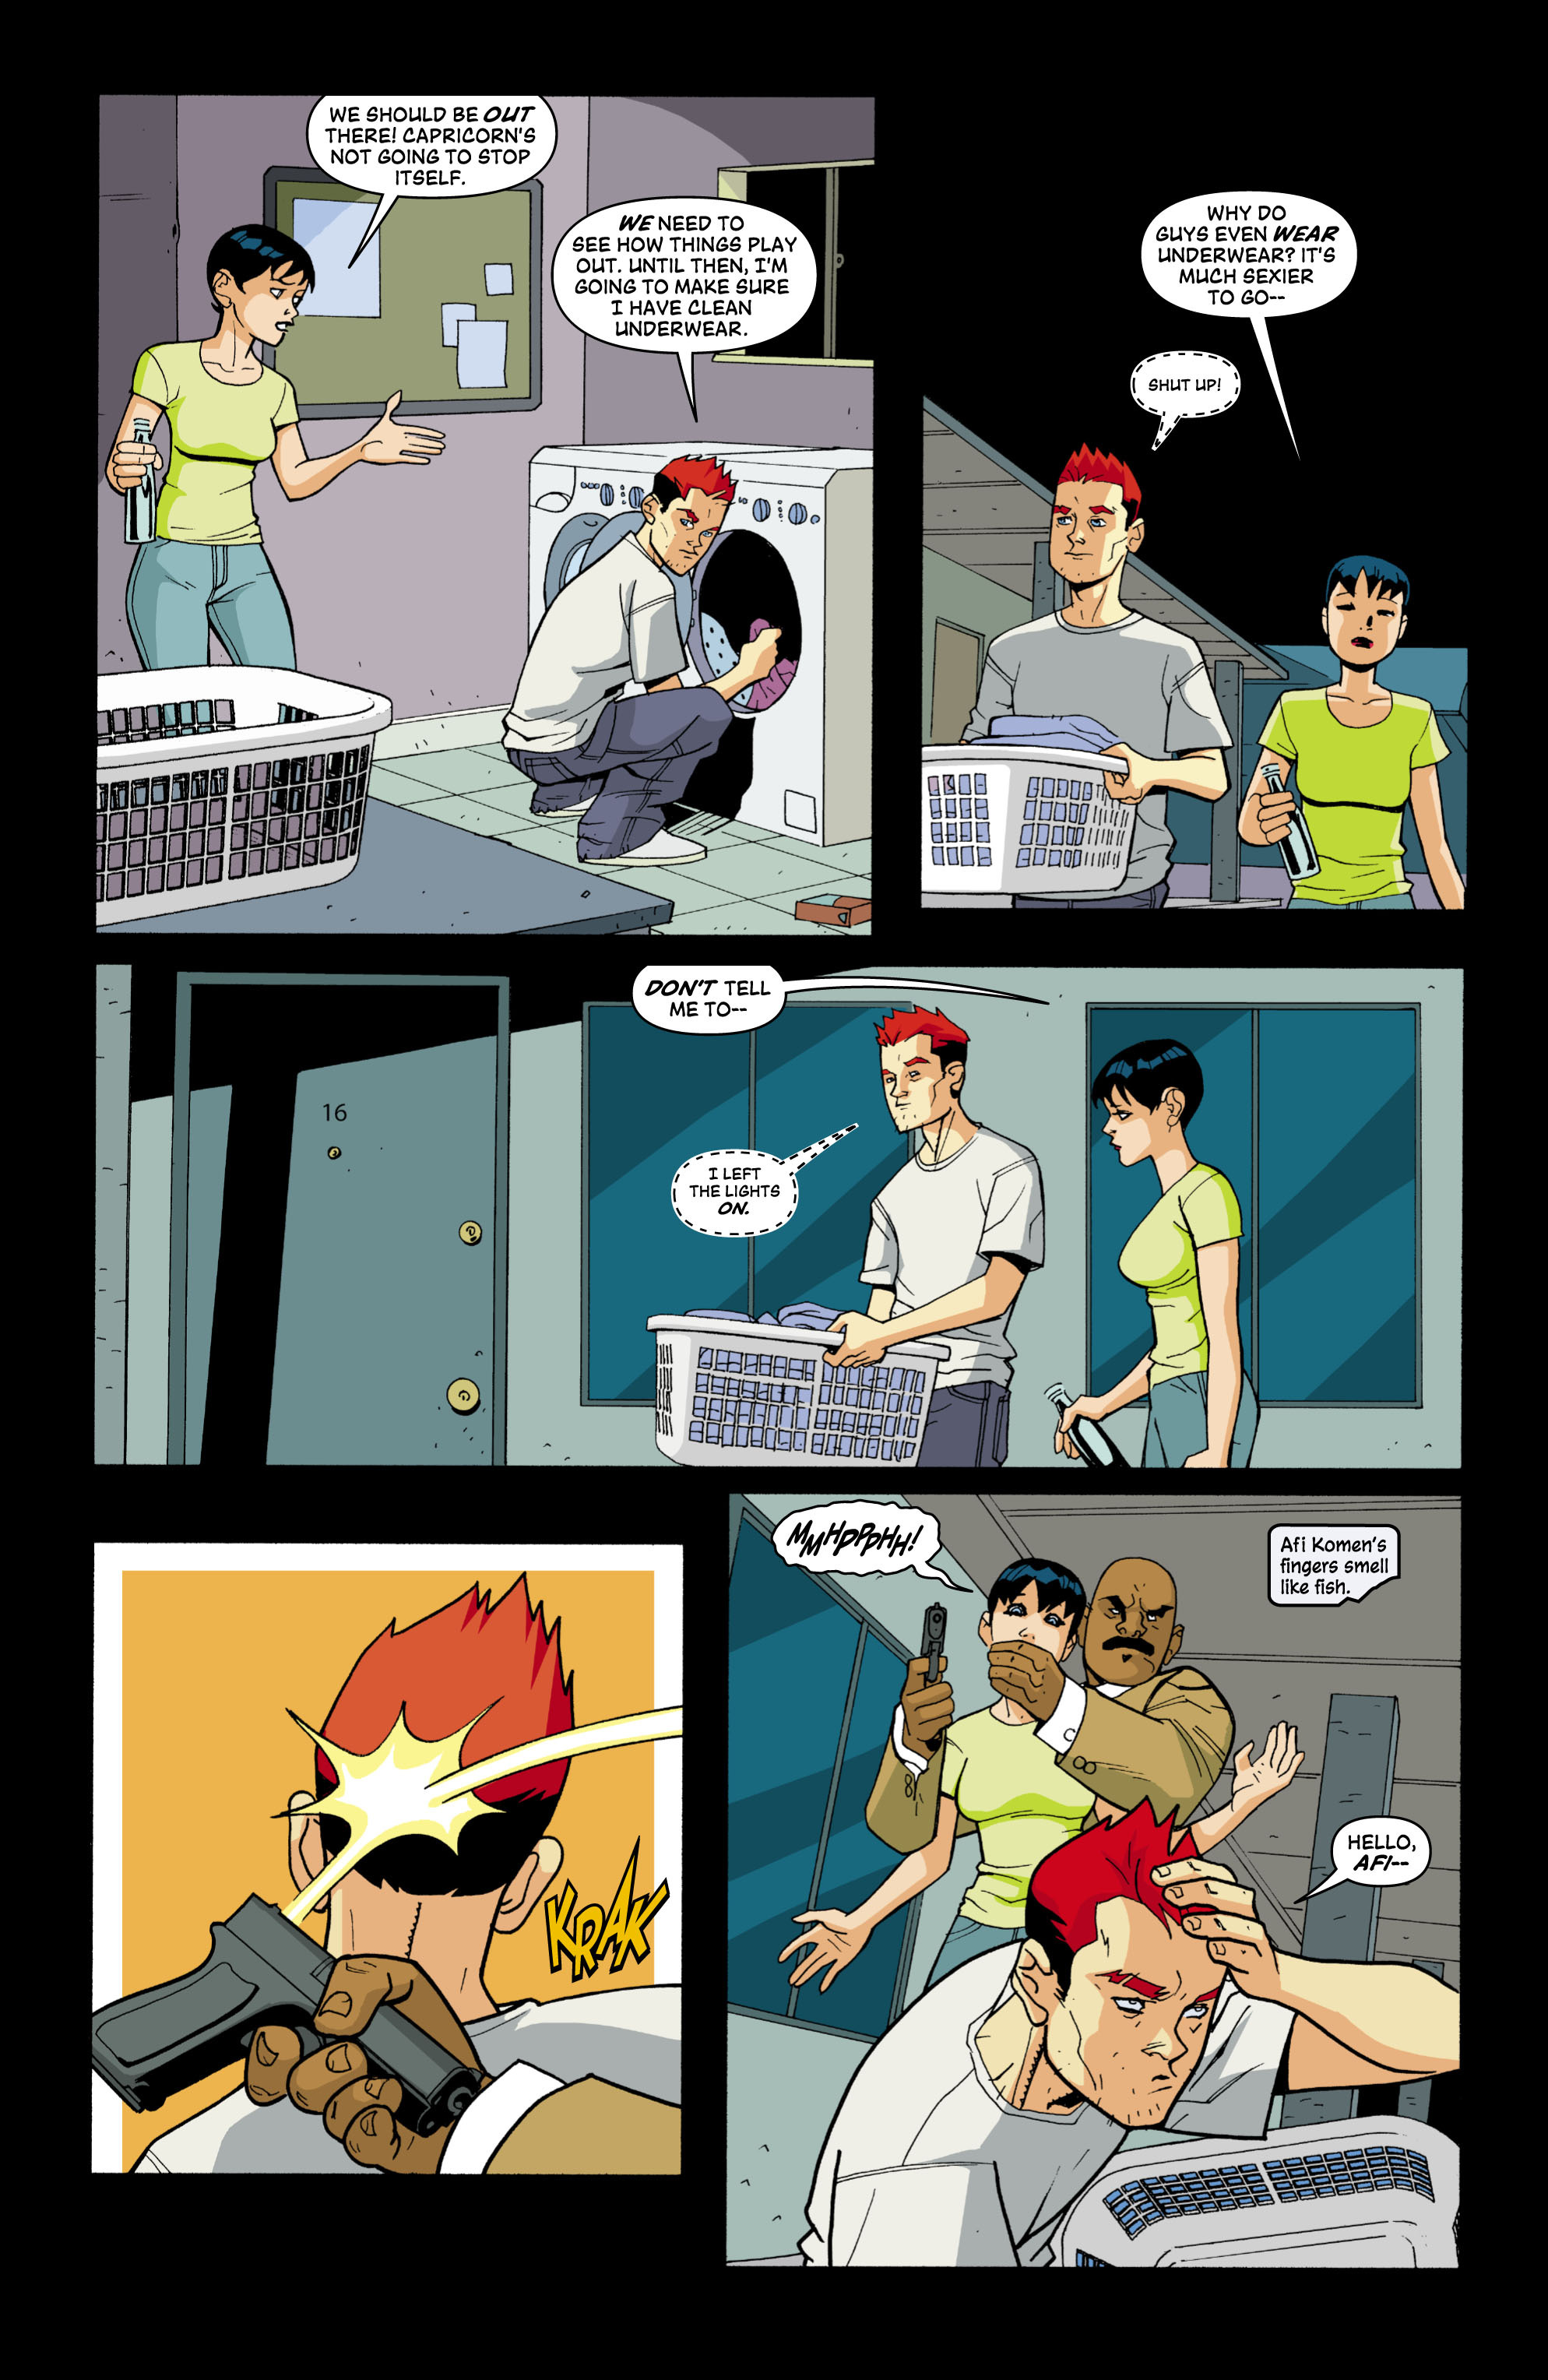 Read online Red Herring comic -  Issue #3 - 10